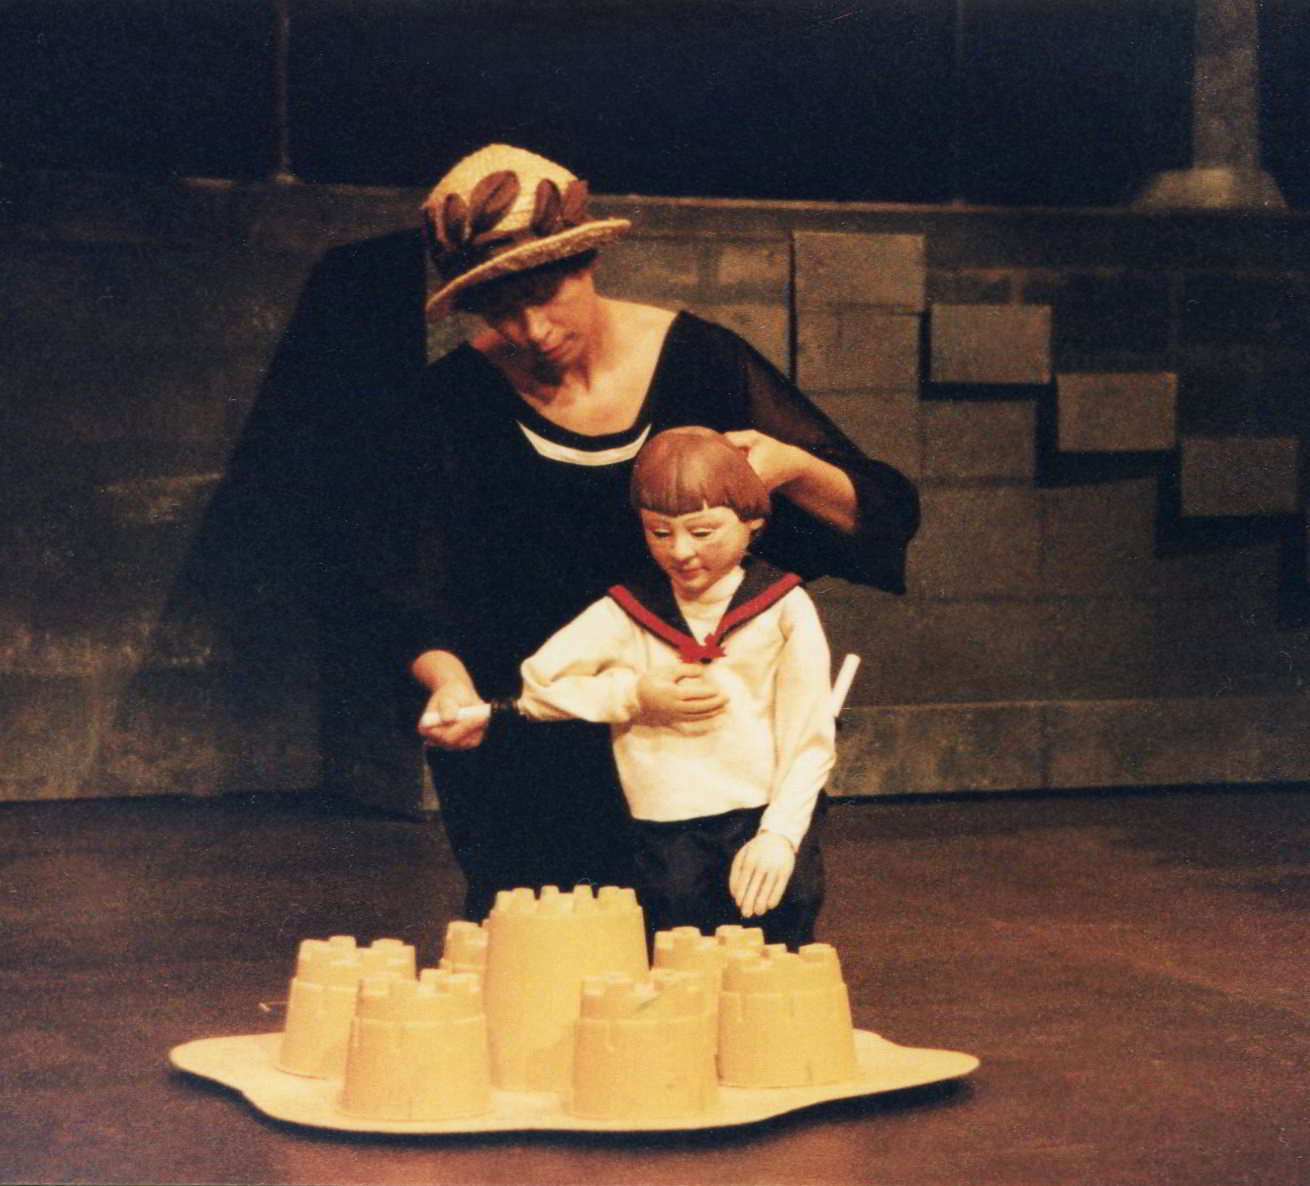 Actor as nanny helps puppet boy build sand castles